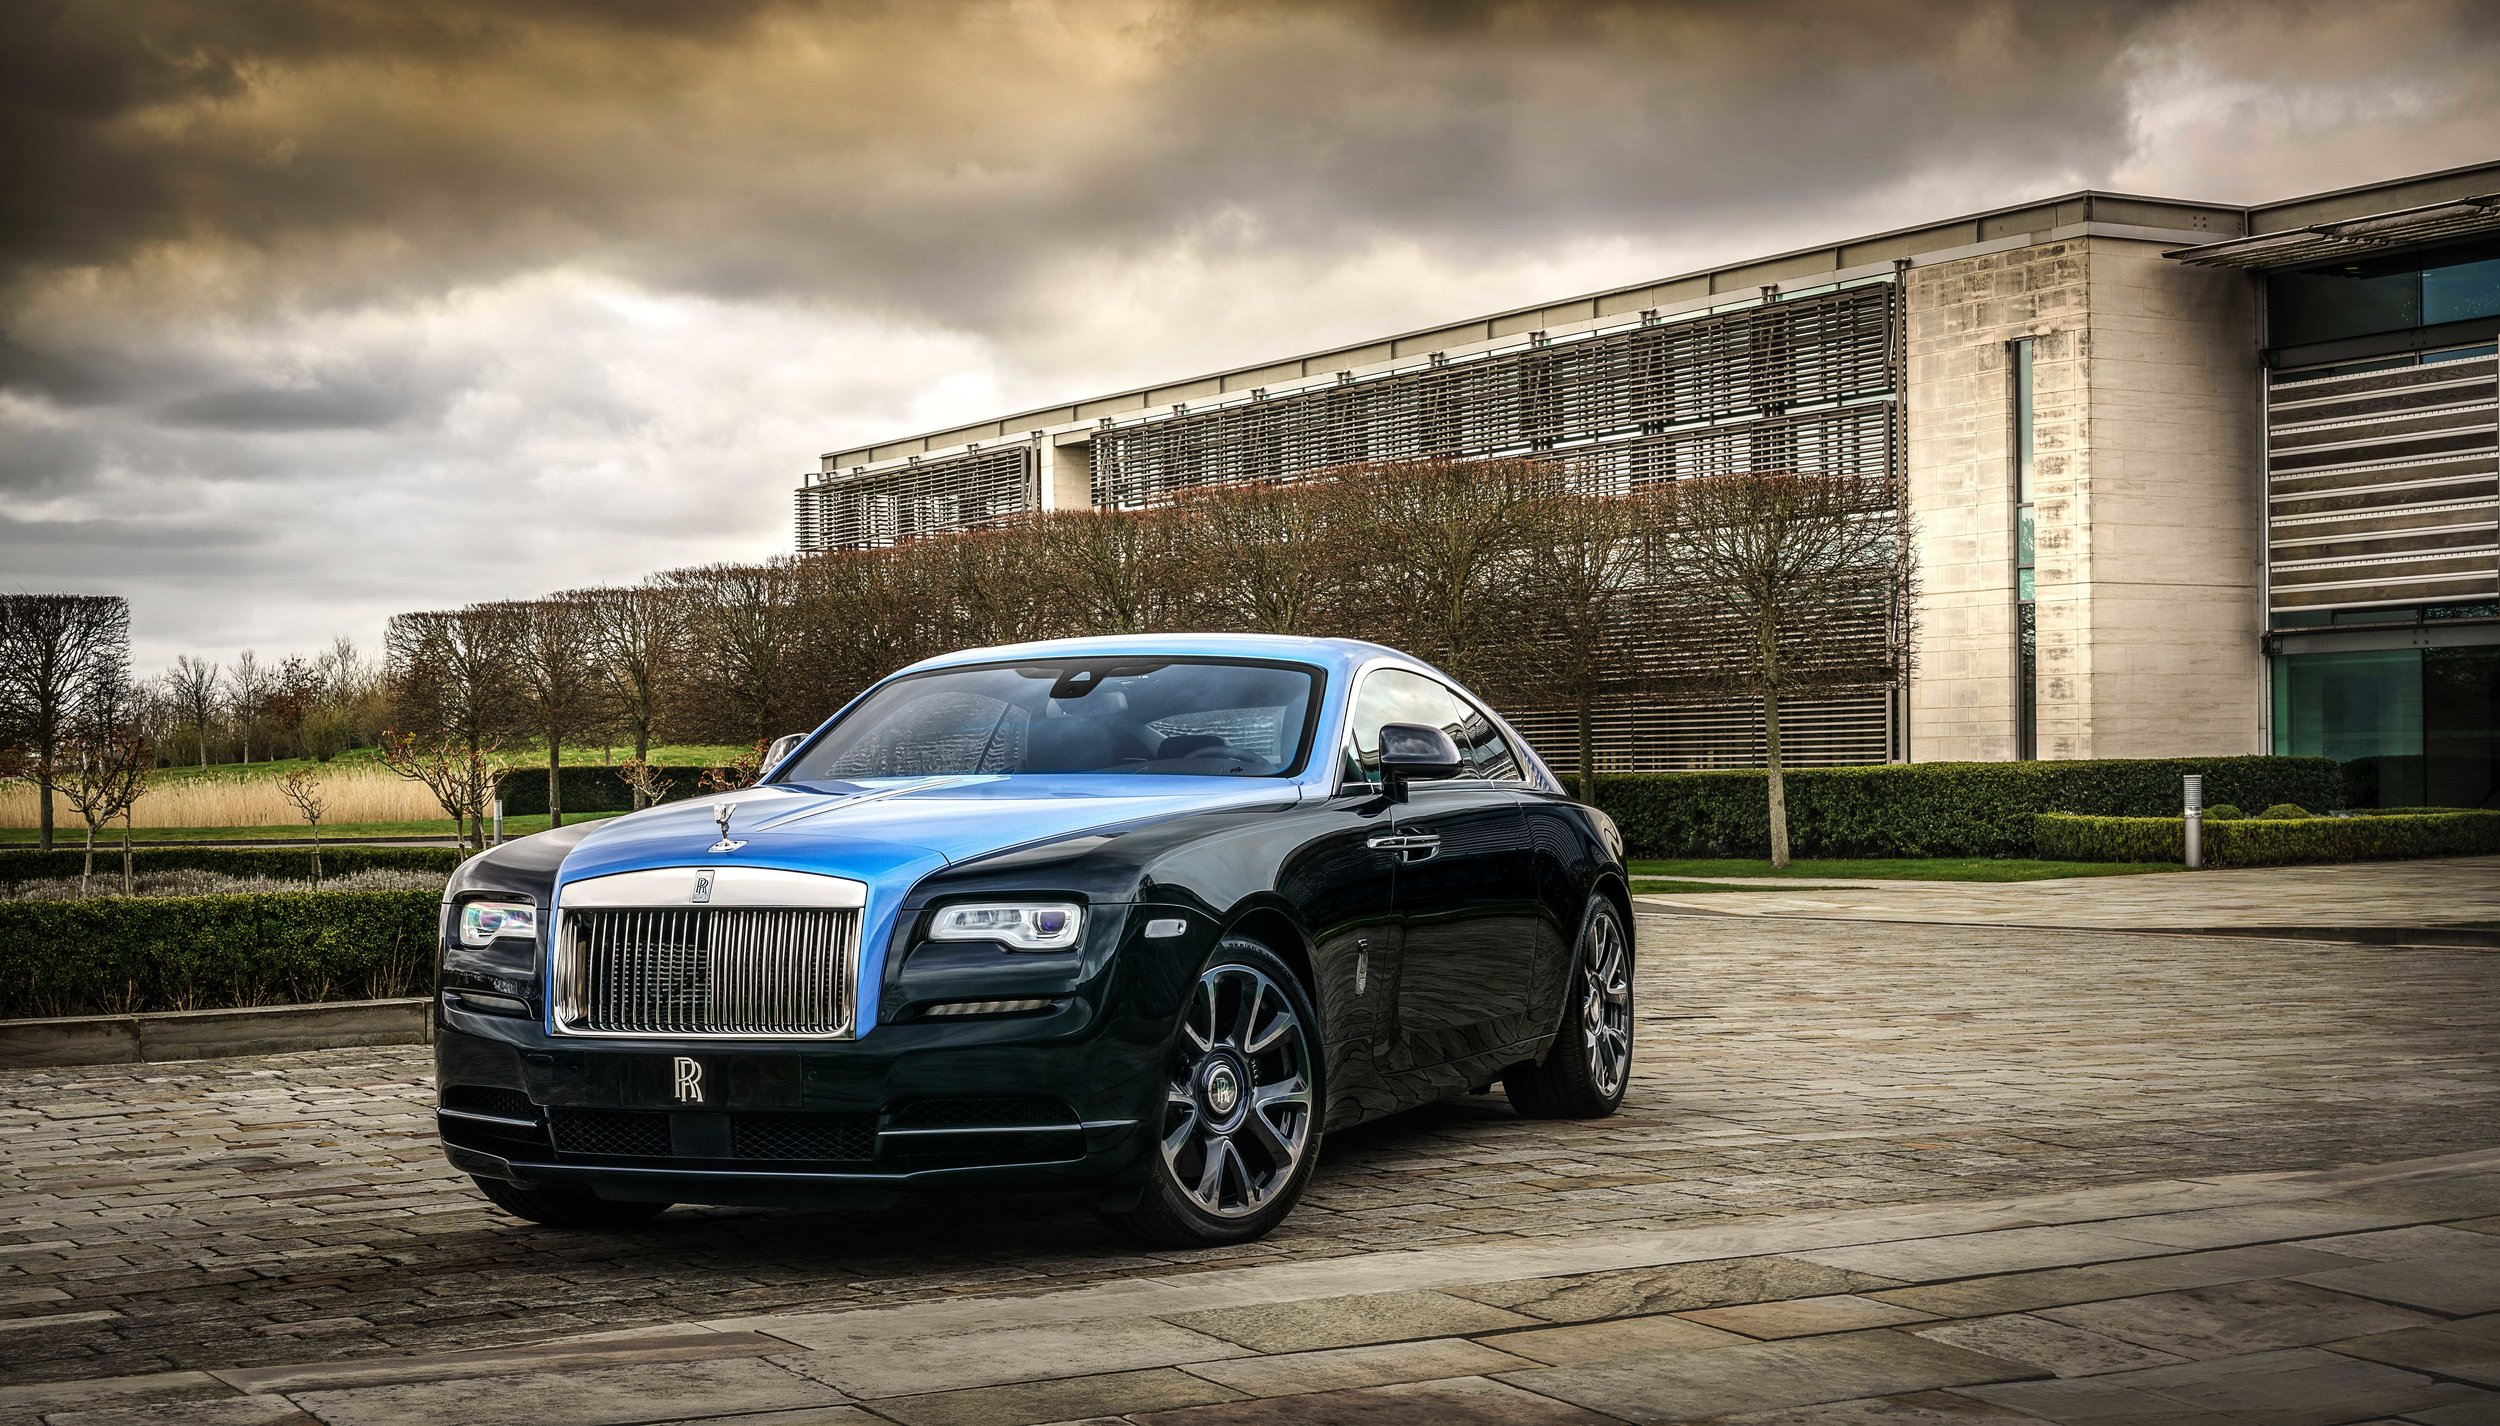 The very special one-off Rolls-Royce Wraith at its home in Goodwood.